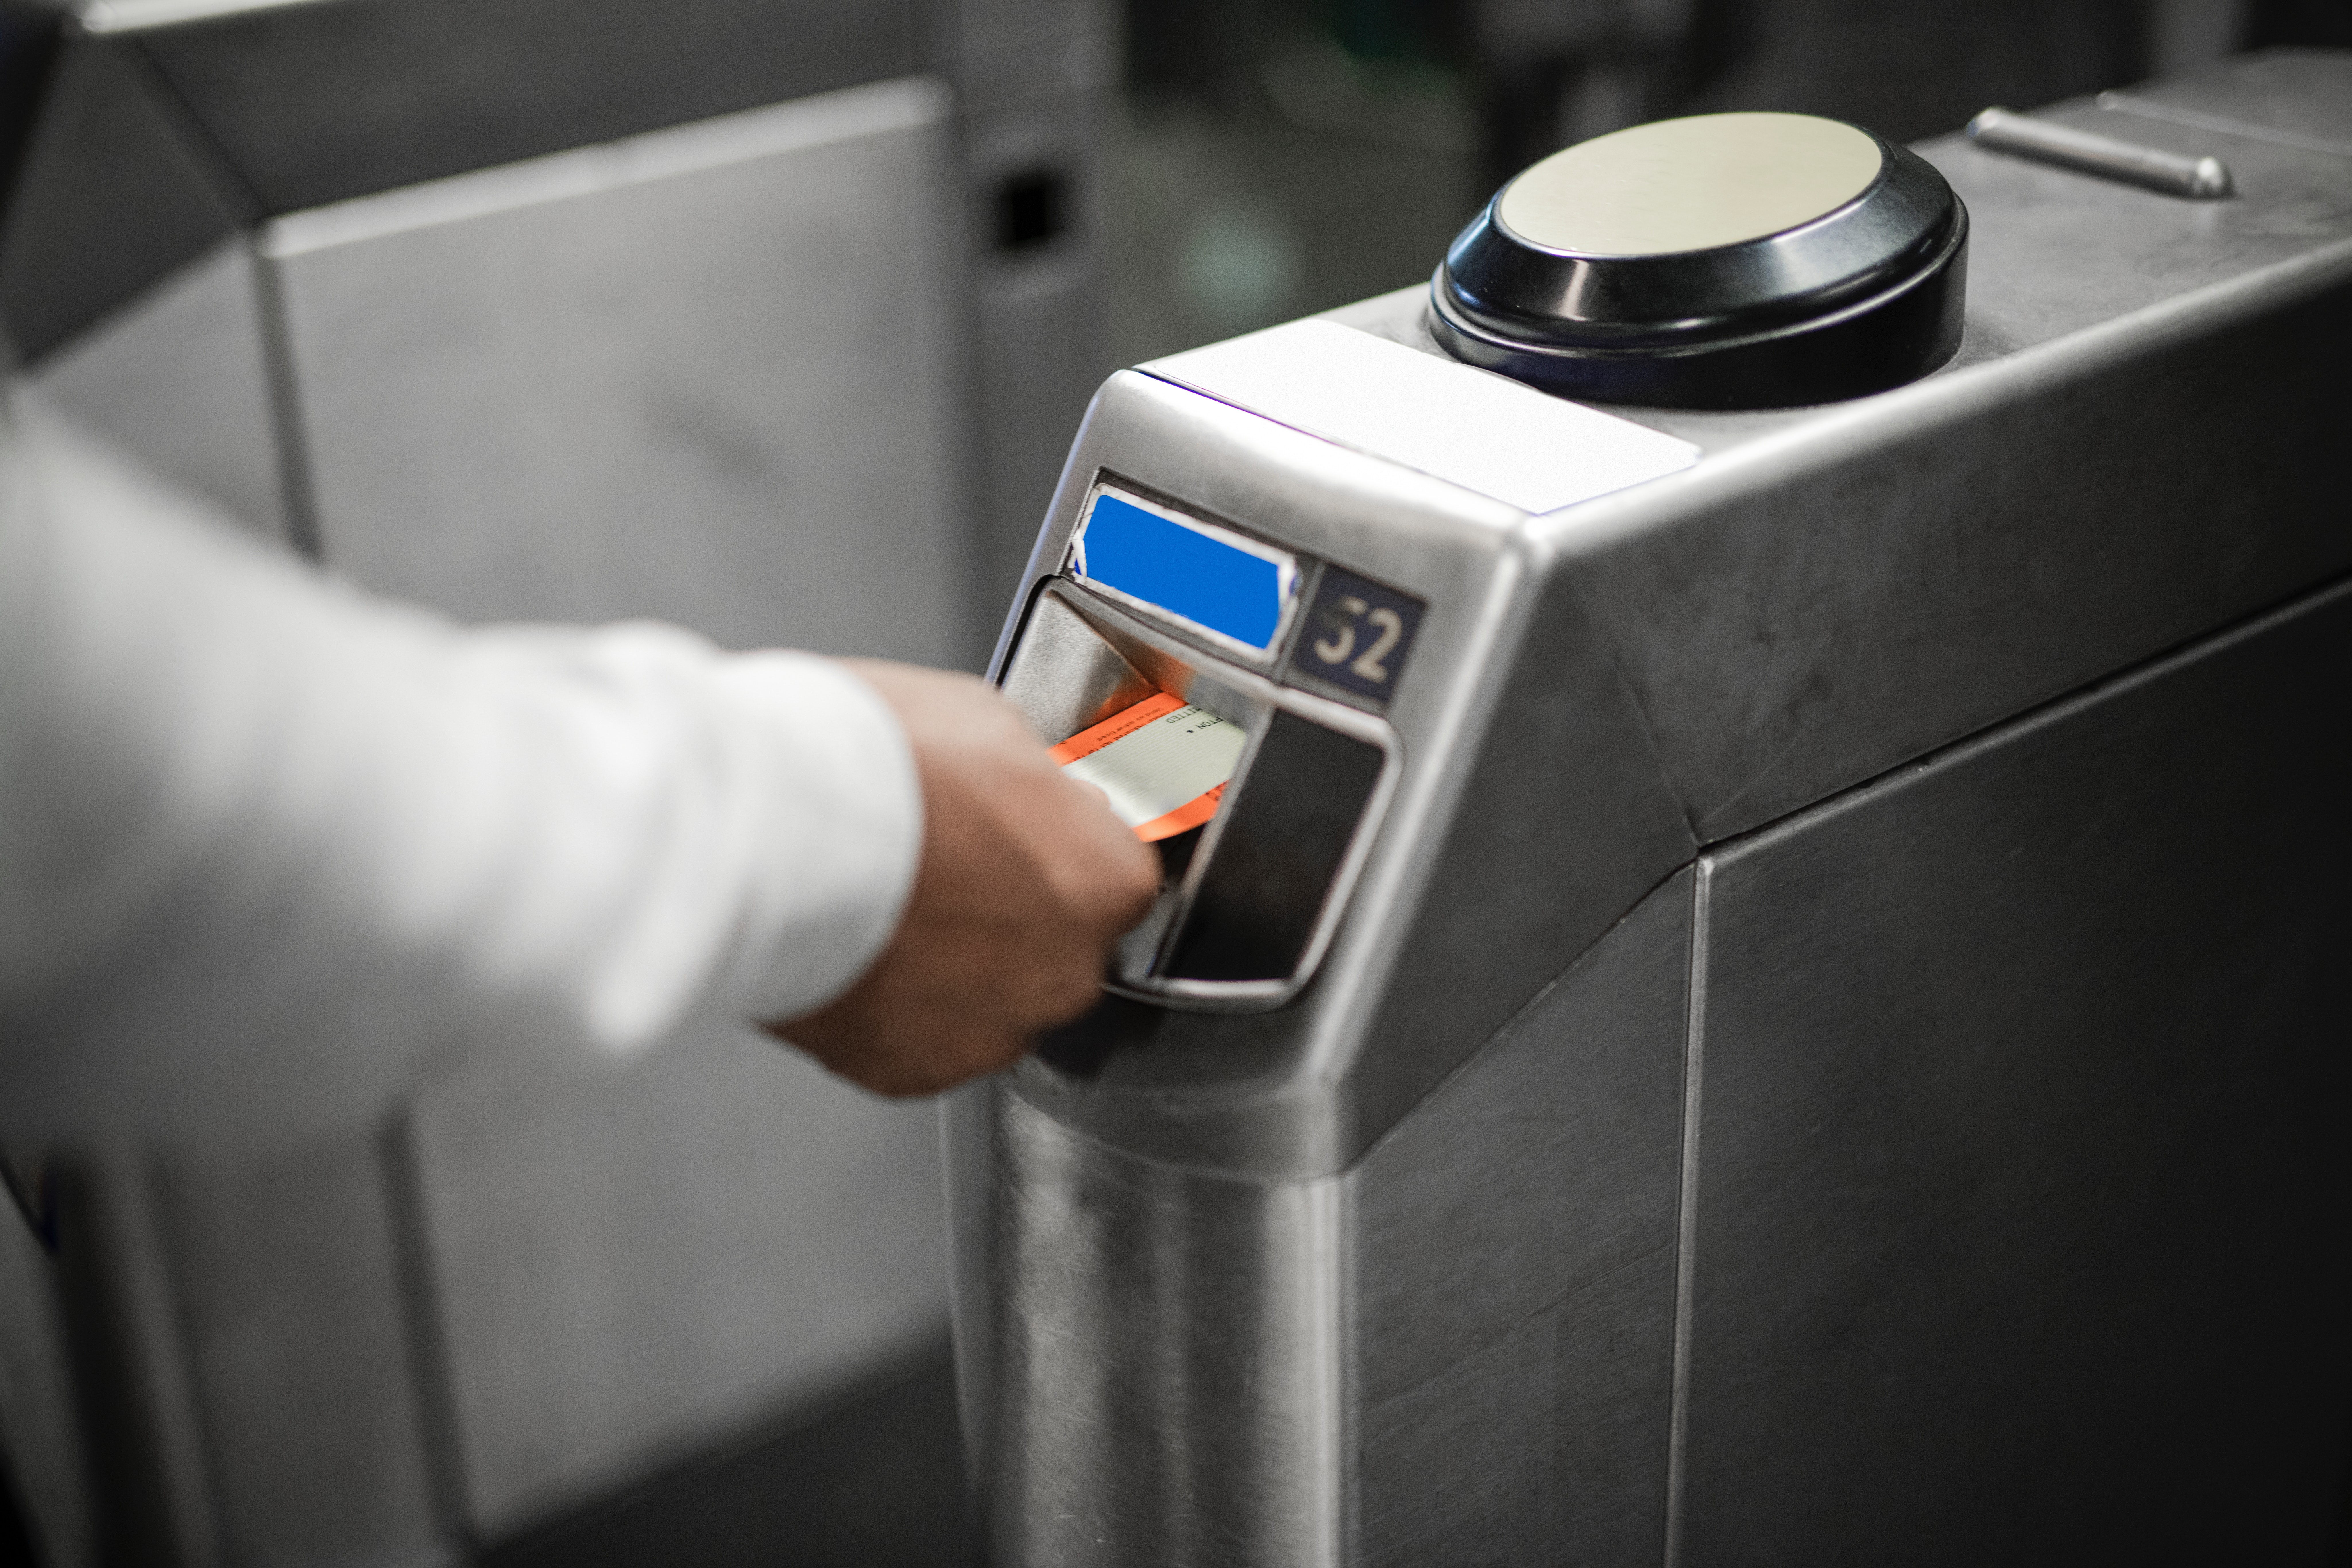 Smart gate with a turnstile system in the Philippines